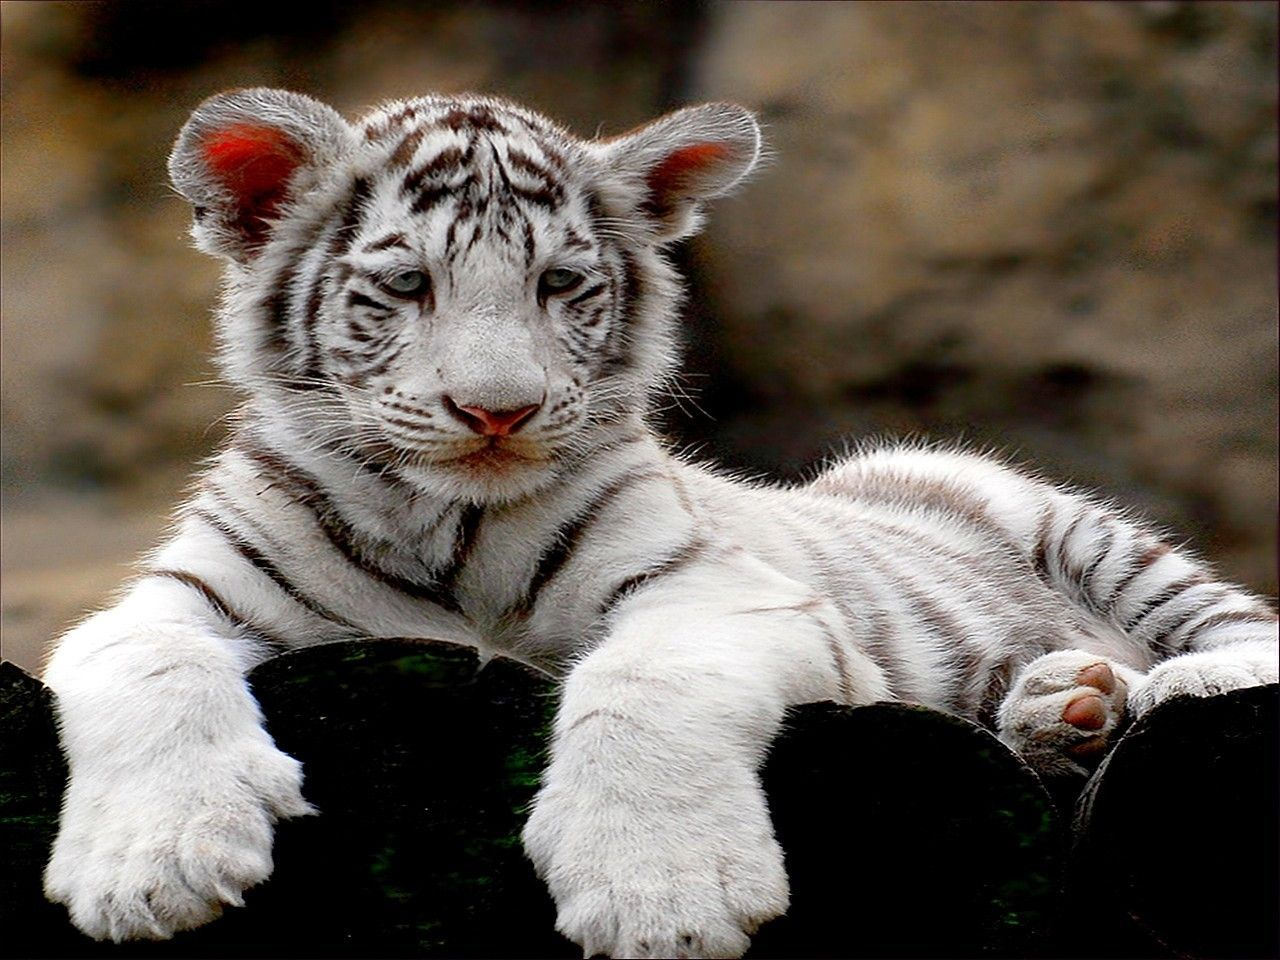 White Tiger Cubs Wallpaper Cute Wallpapers Gallery 1280x960